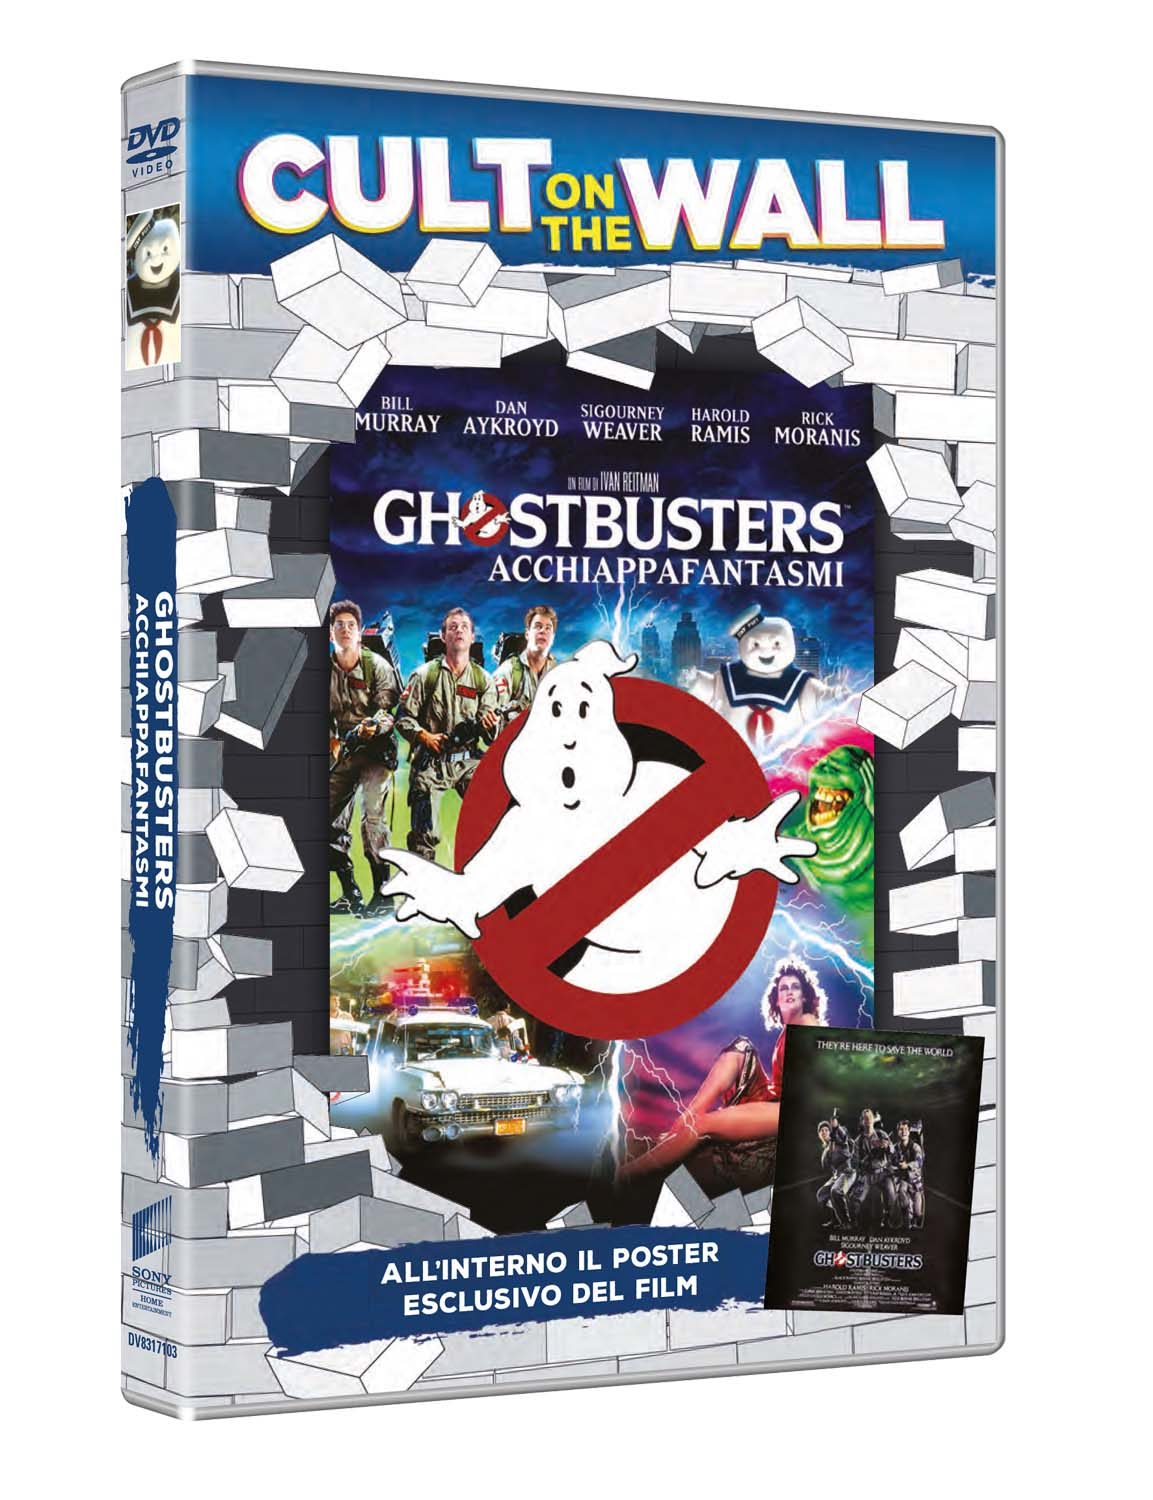 GHOSTBUSTERS (CULT ON THE WALL) (DVD+POSTER) (DVD)